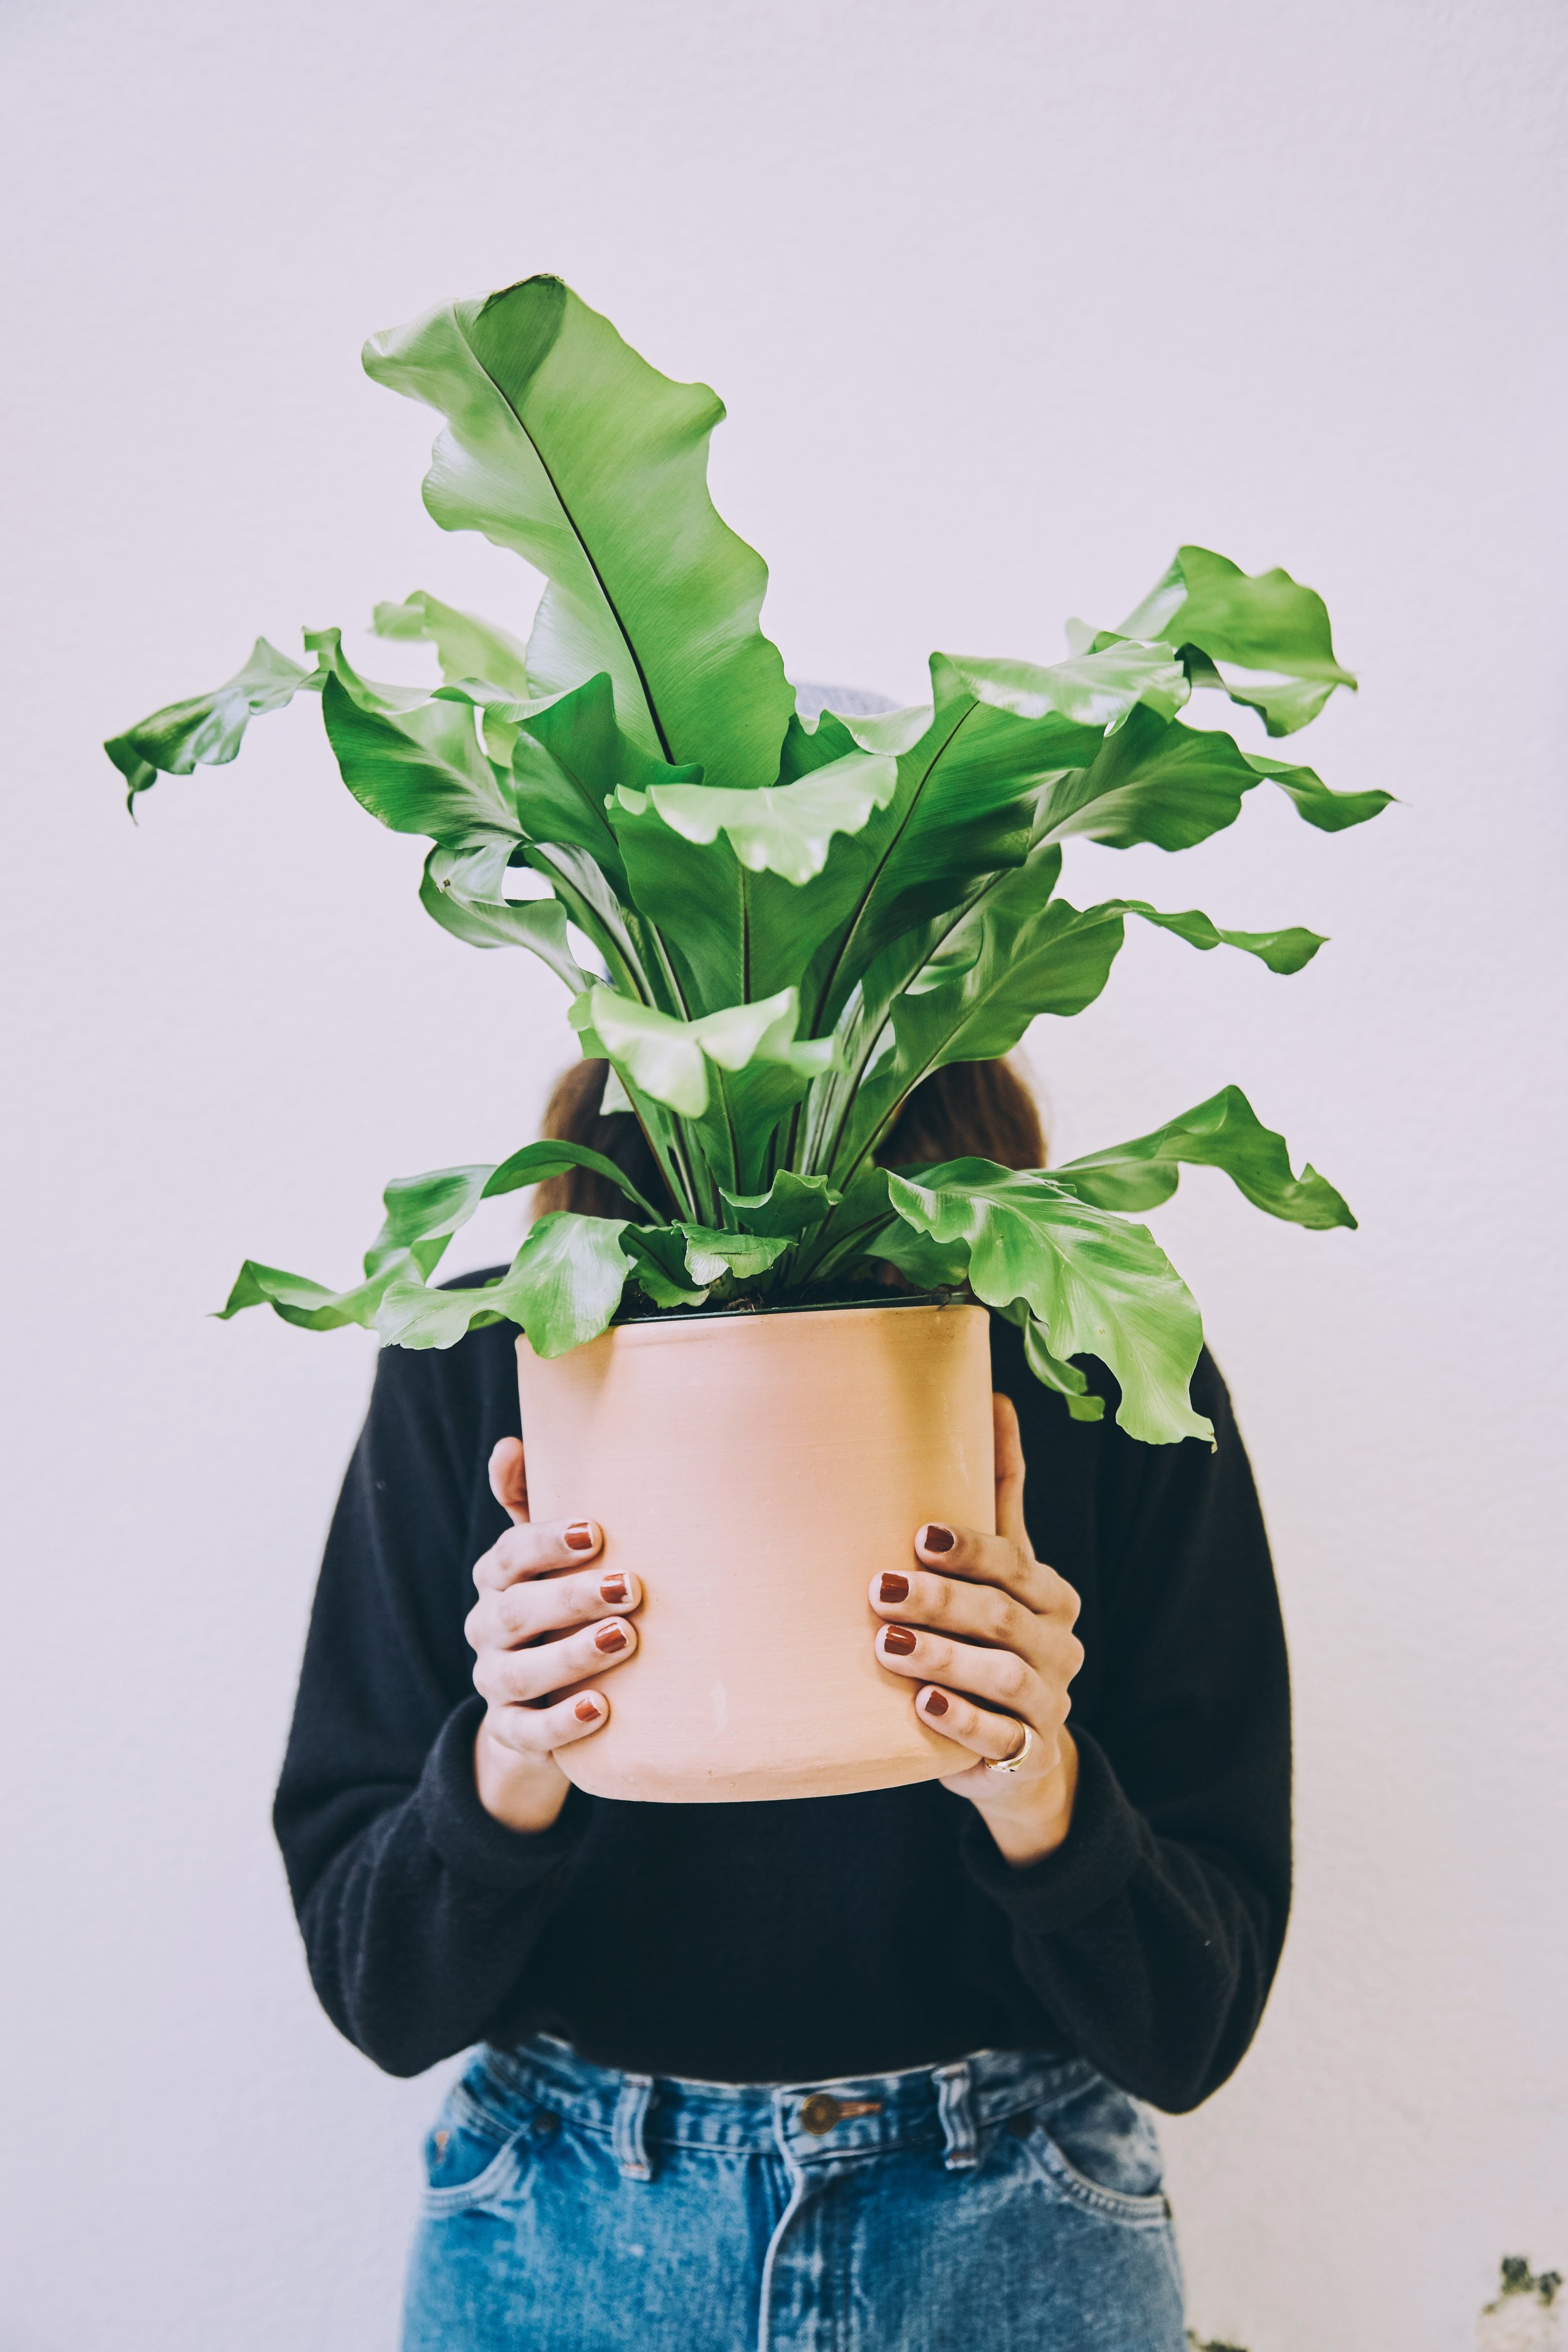 New Growth - Monstera Maven is a new enterprise and we appreciate all our clients! Our list is still growing so check back soon! If you'd like to work with us, please Contact Us below.